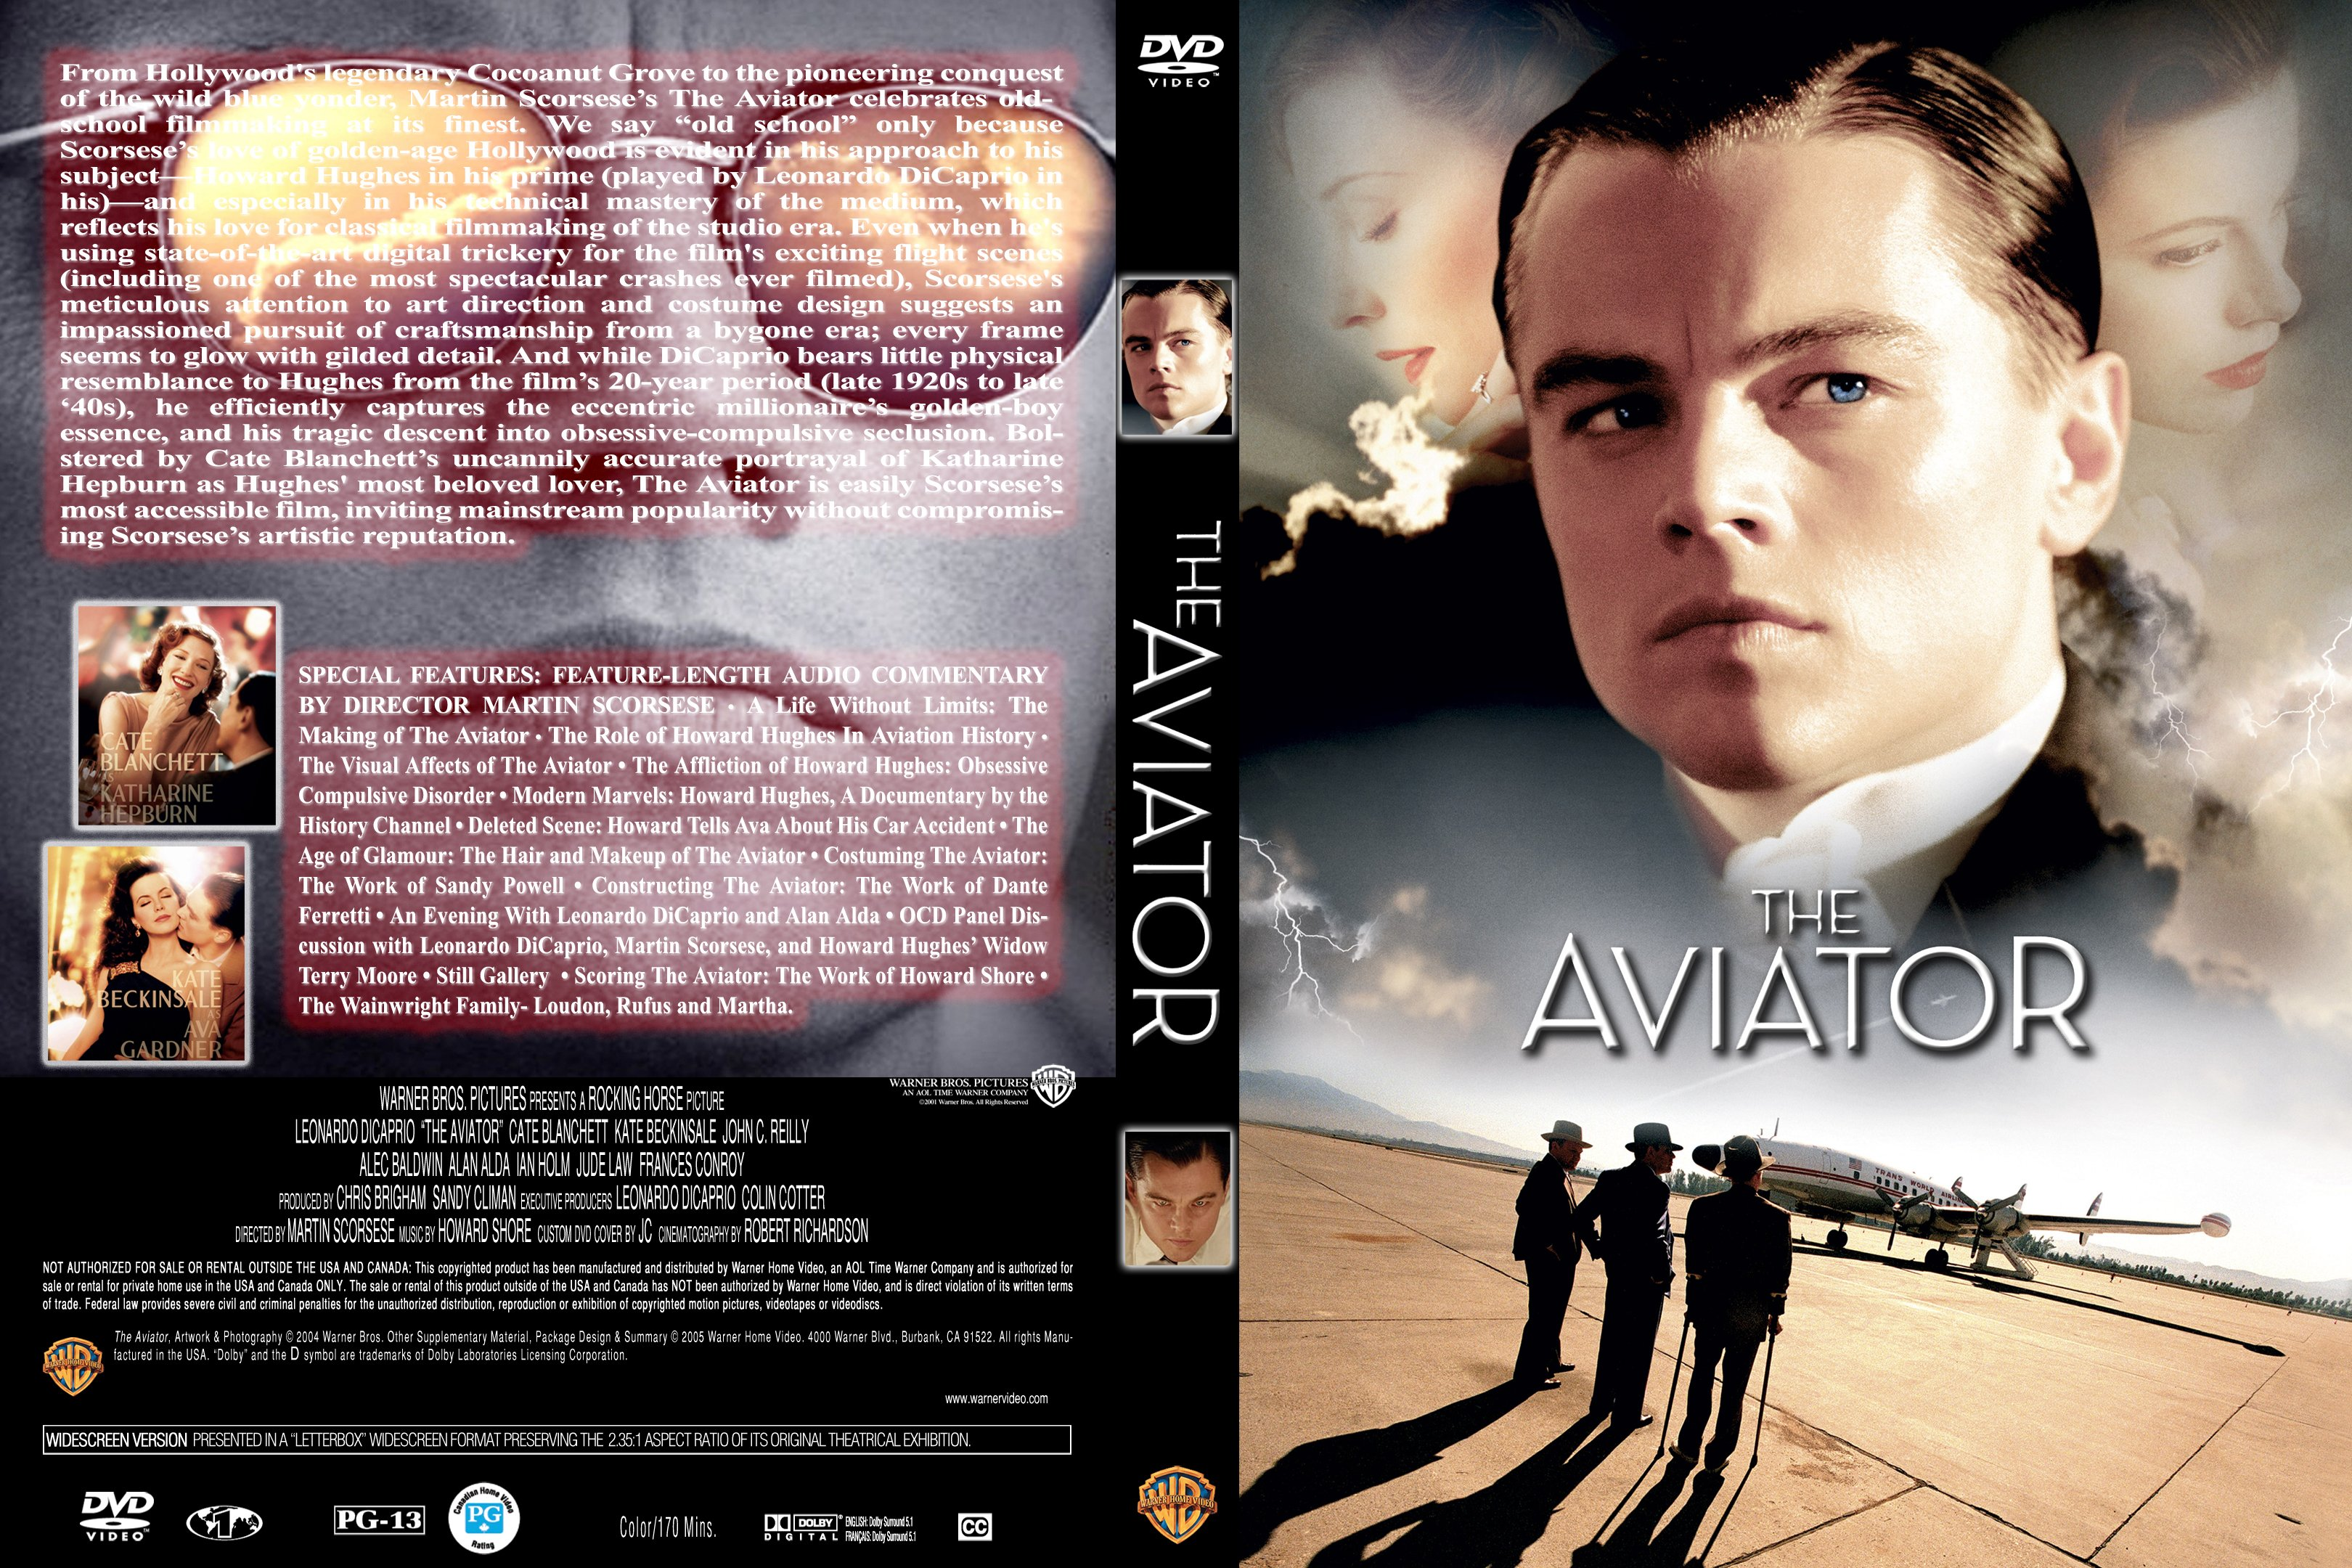 Accuracy of aviator movie